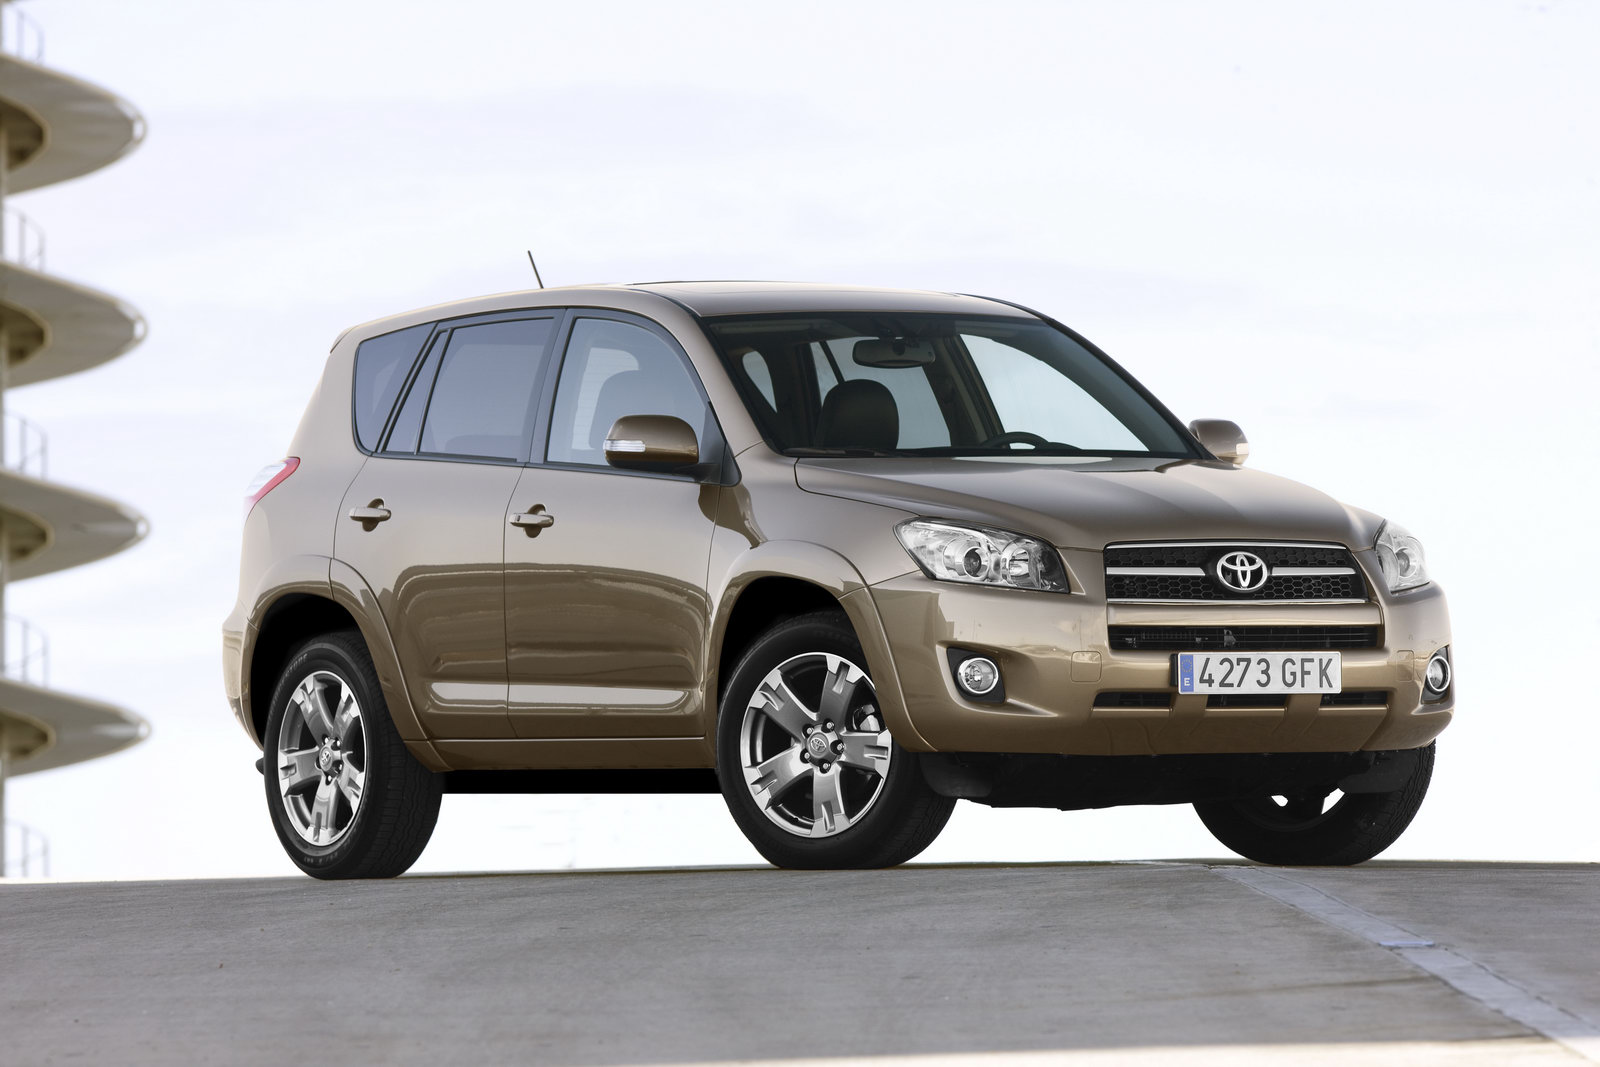 2011 toyota rav4 facelift features photos price. Black Bedroom Furniture Sets. Home Design Ideas